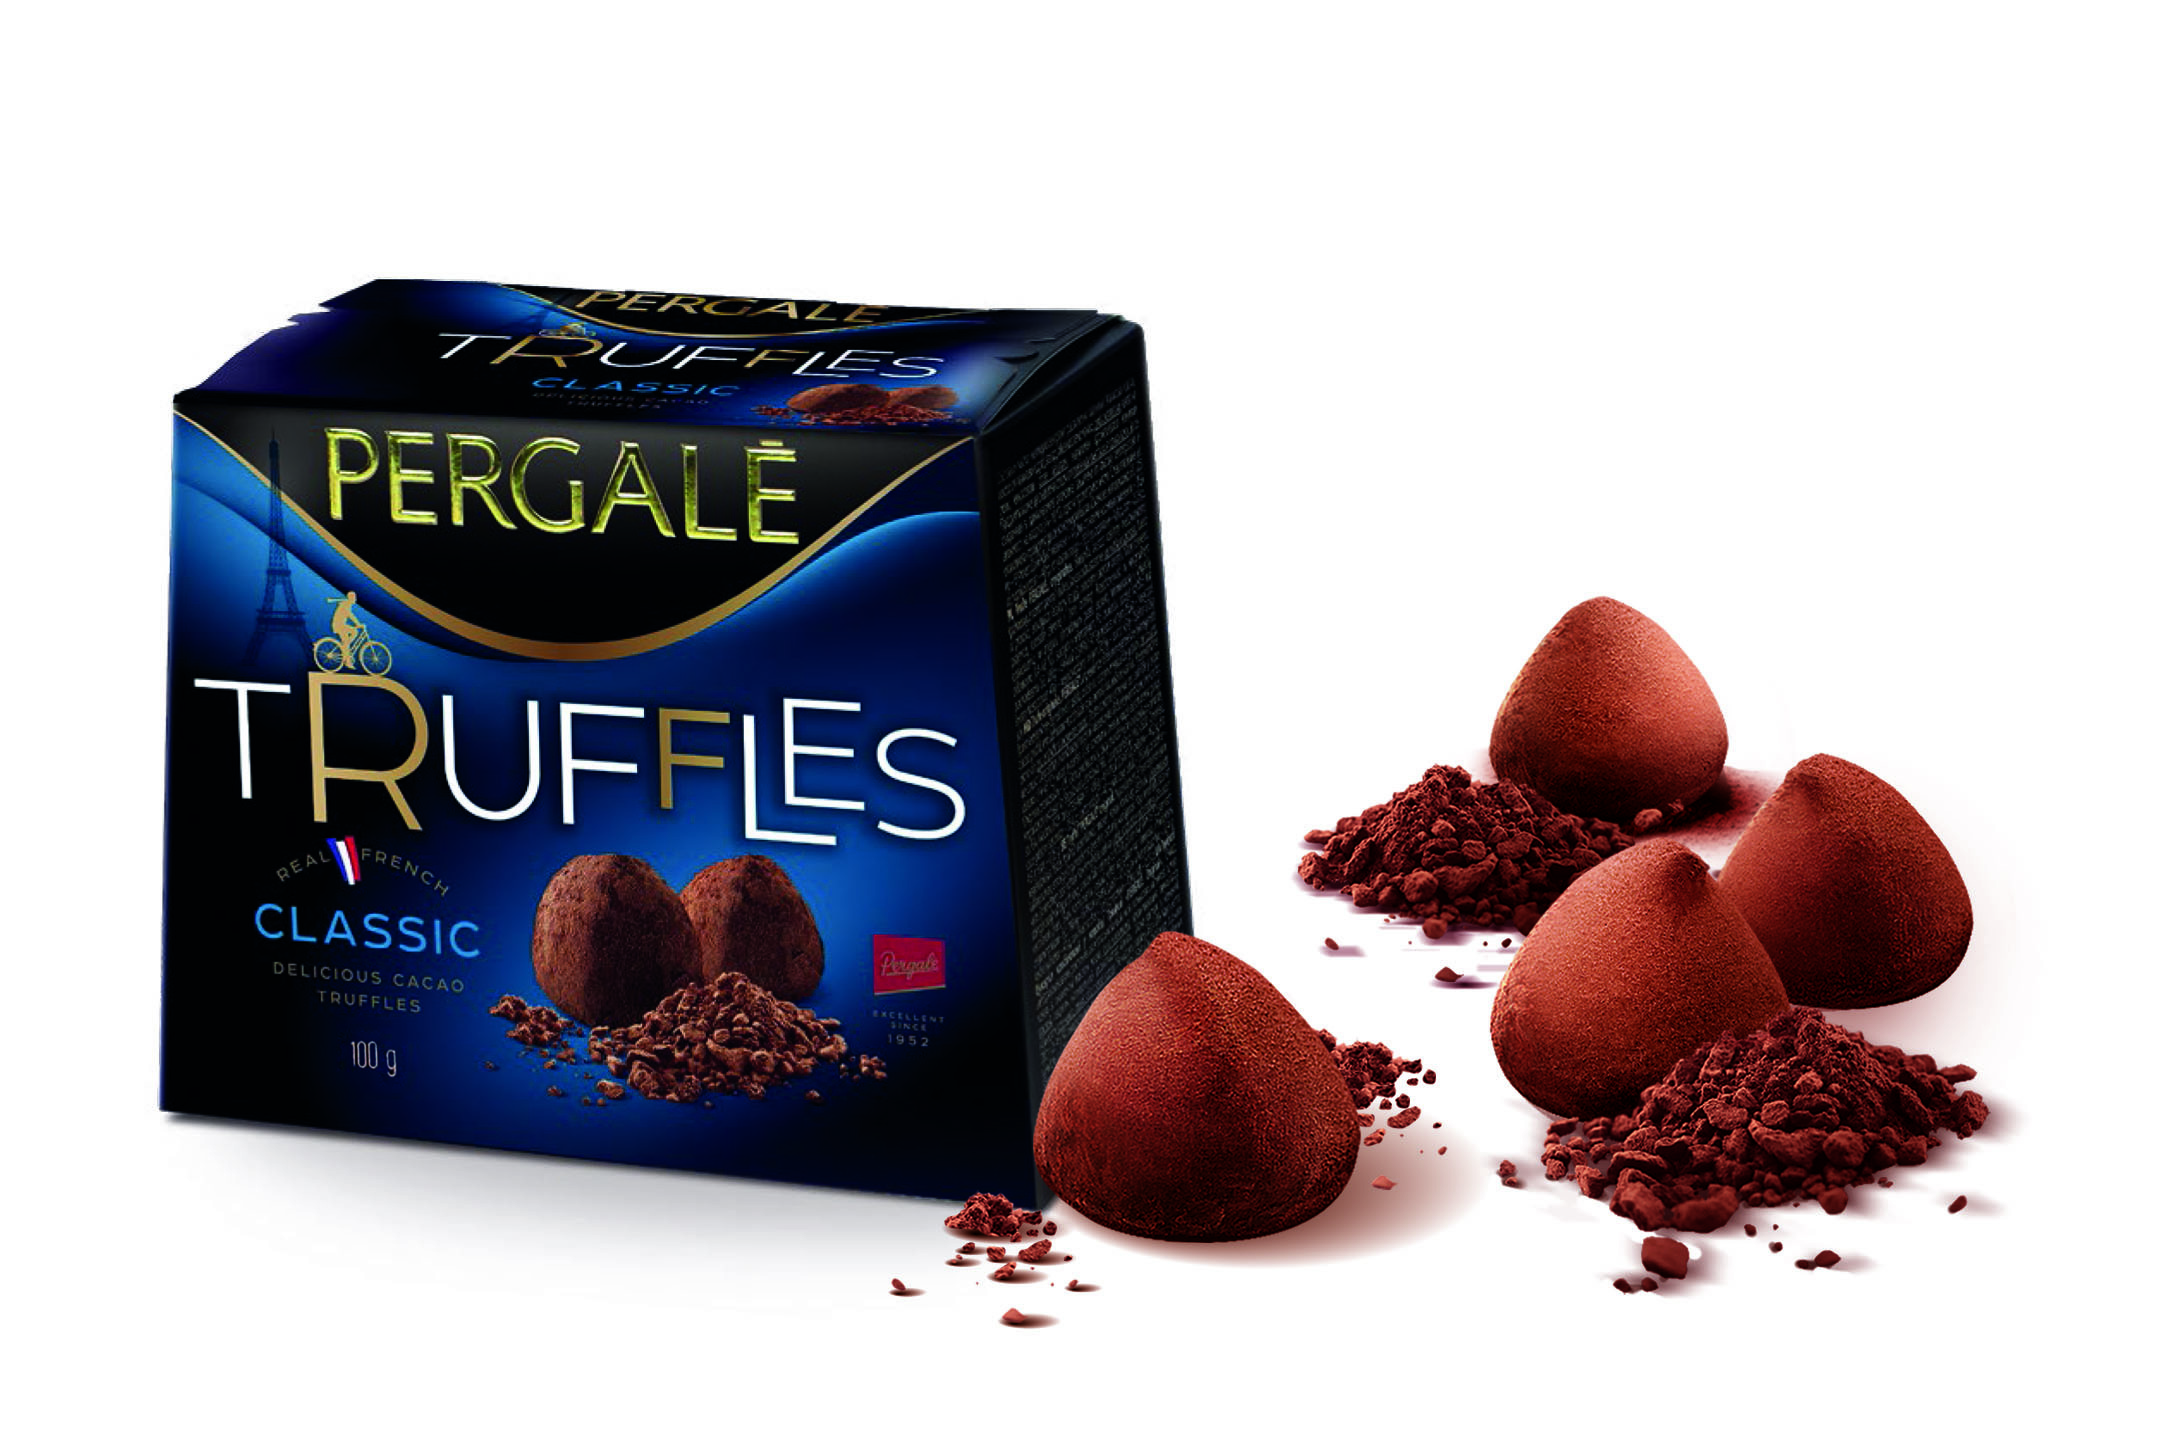 Peg's truffle flavour truffle cocoa butter chocolate